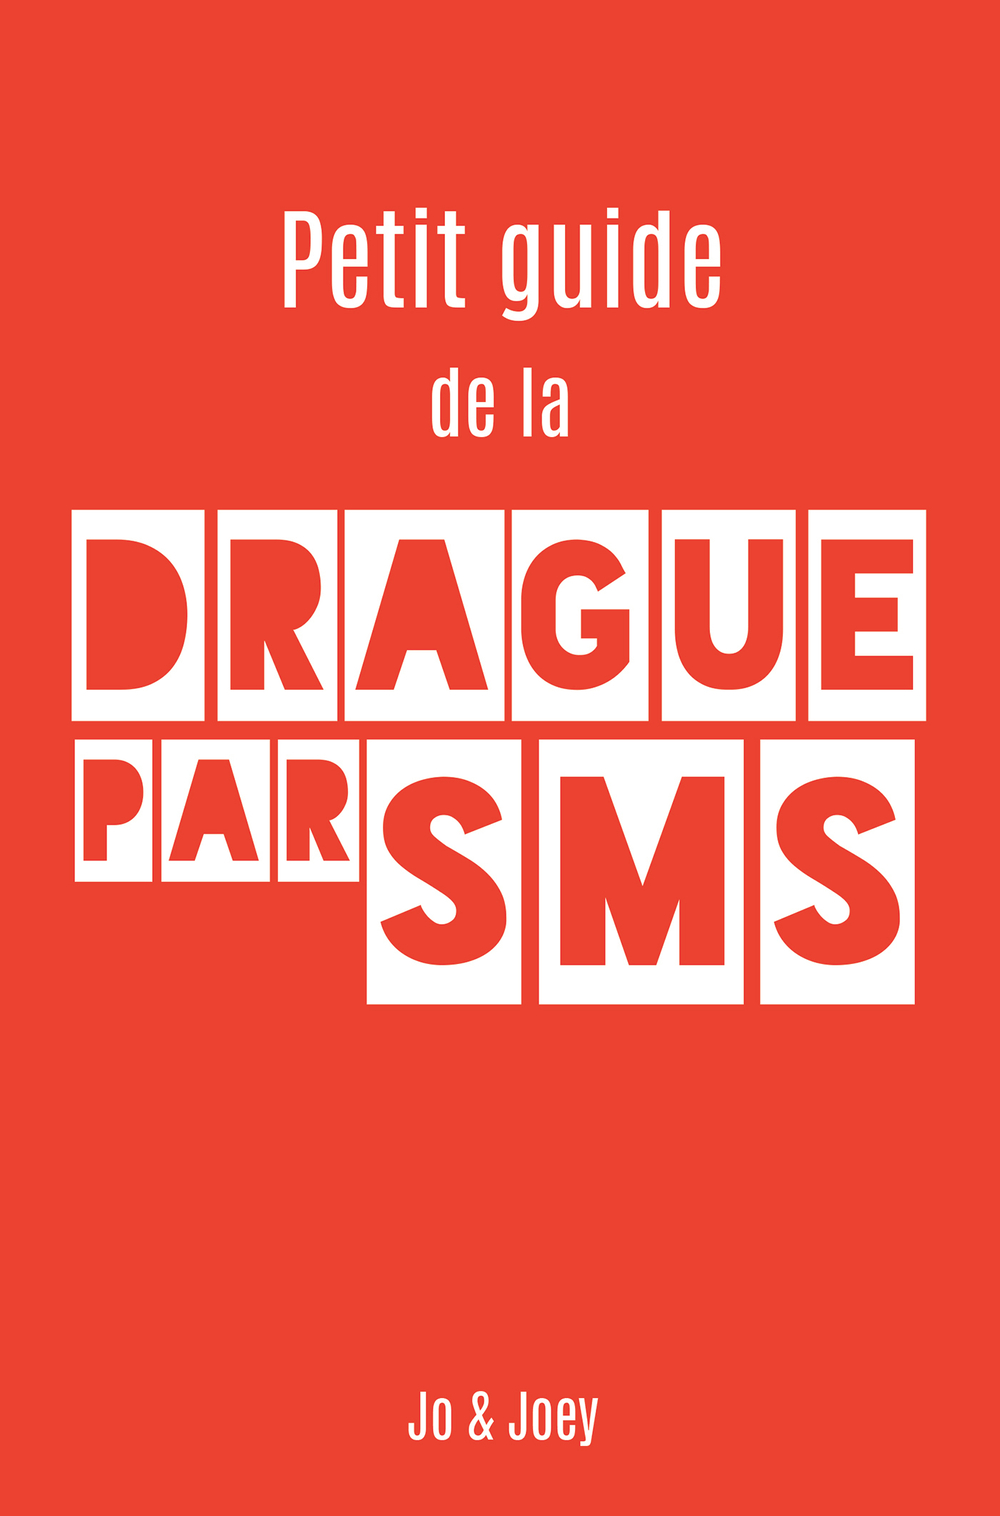 Le petit Guide de la Drague par SMS